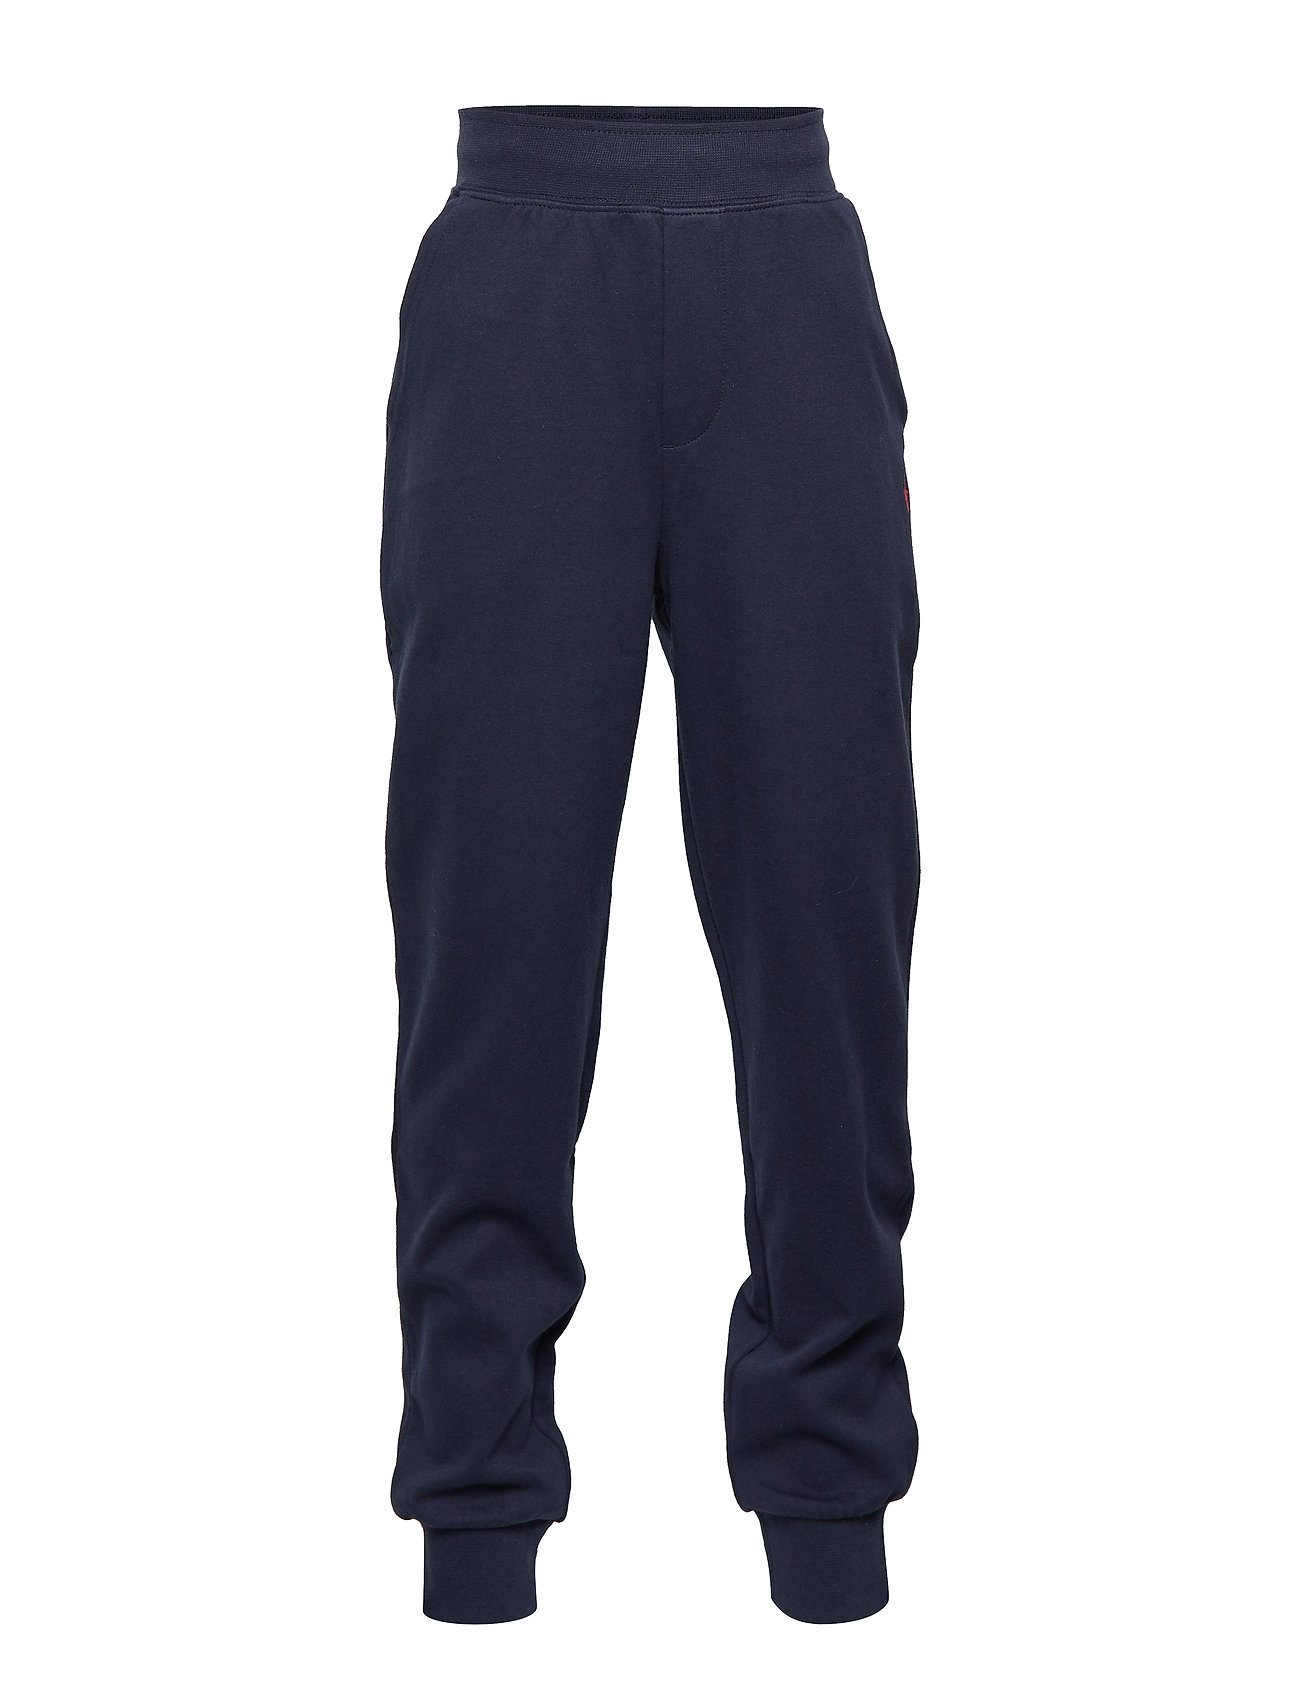 Ralph Lauren Kids Cotton-Blend Drawstring Pant - FRENCH NAVY